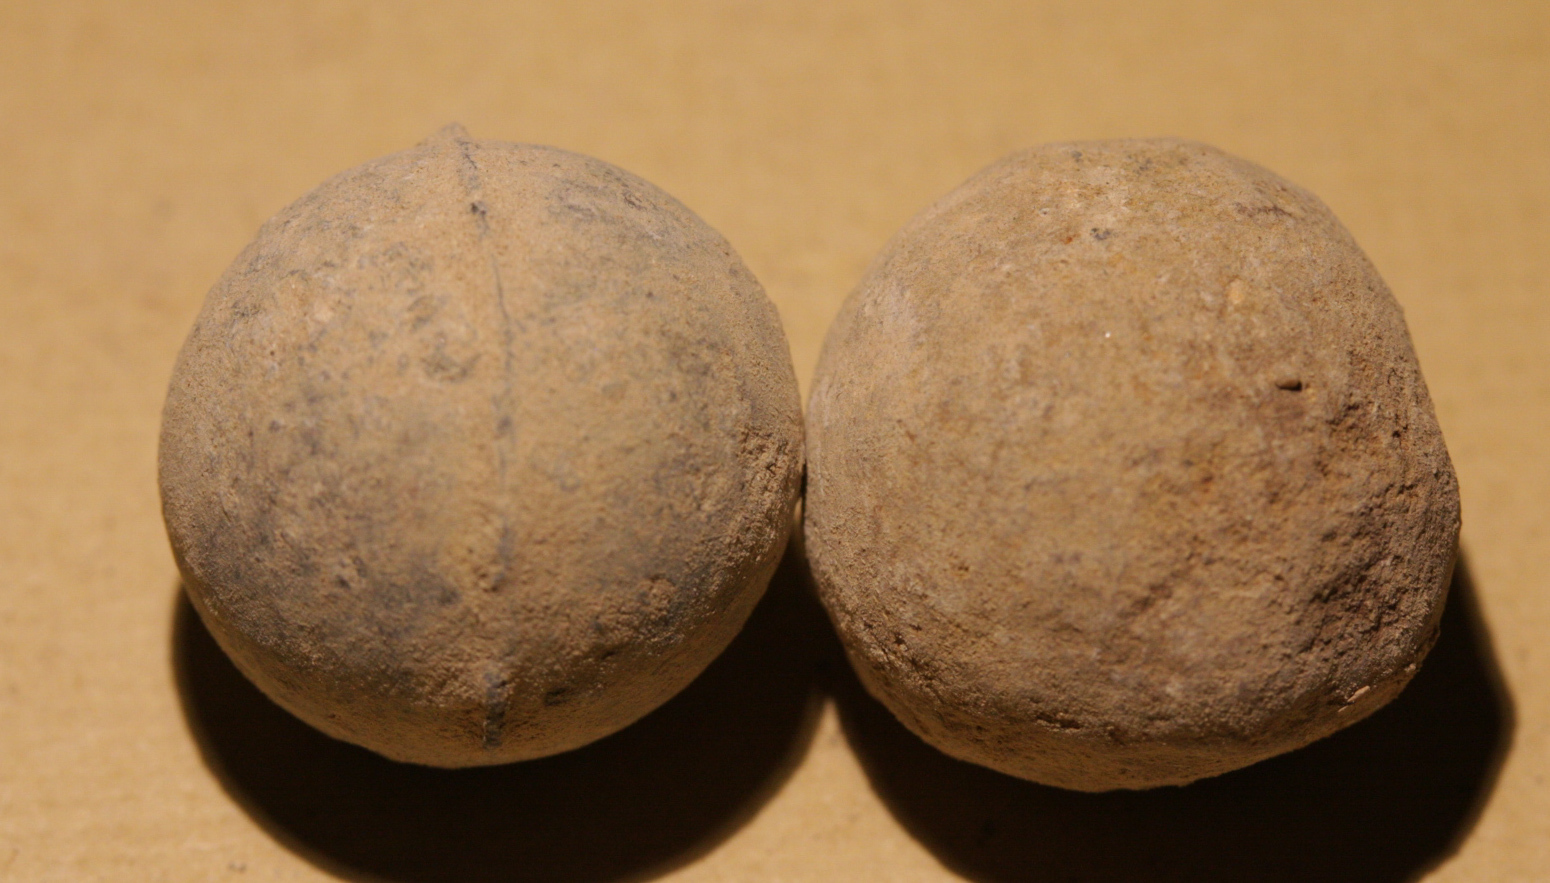 JUST ADDED ON 12/07 - THE BATTLE OF PORT REPUBLIC / JACKSON'S VALLEY CAMPAIGN - Two .69 Caliber Round Balls WB-PR21